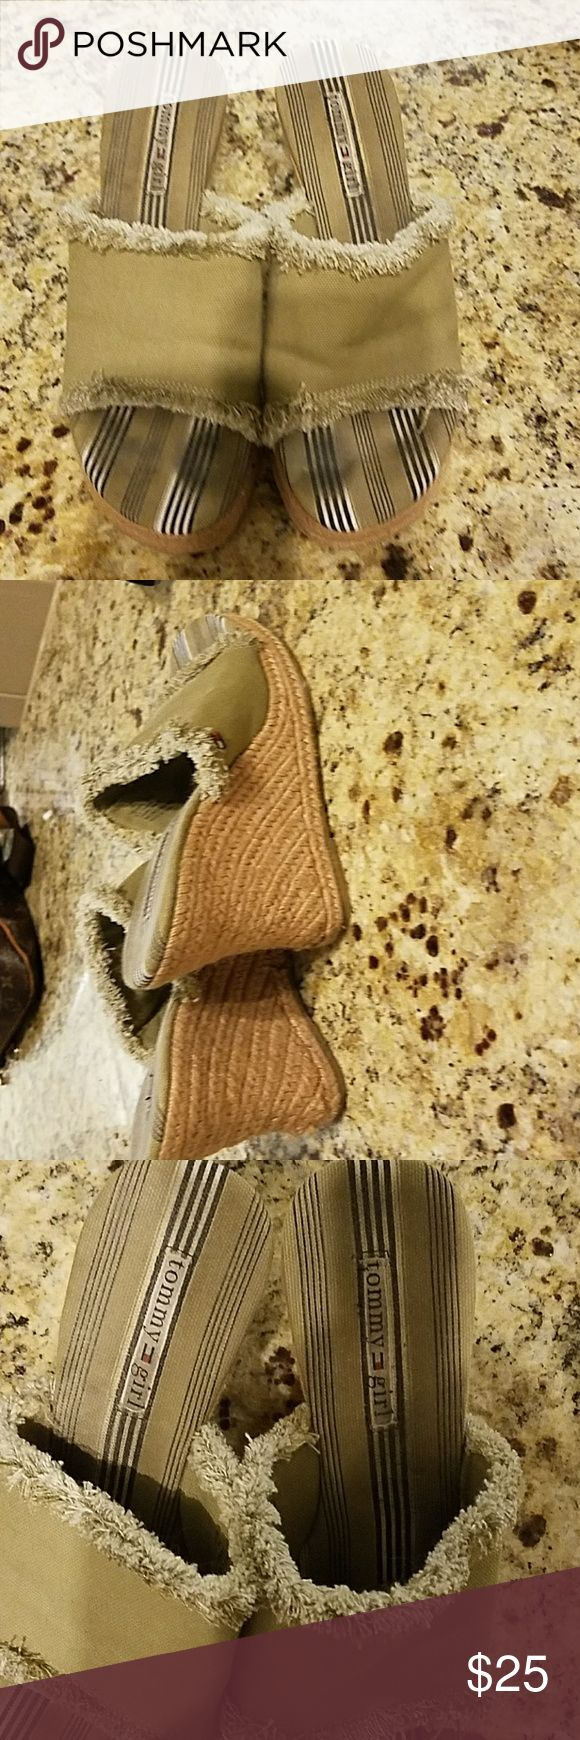 TOMMY HILFIGER...KHAKI... WEDGES...SIZE 8M Tommy Hilfiger Girl khaki slip on wedges with frayed edges, perfect for summer, 4inch wedge heel Tommy Hilfiger Shoes